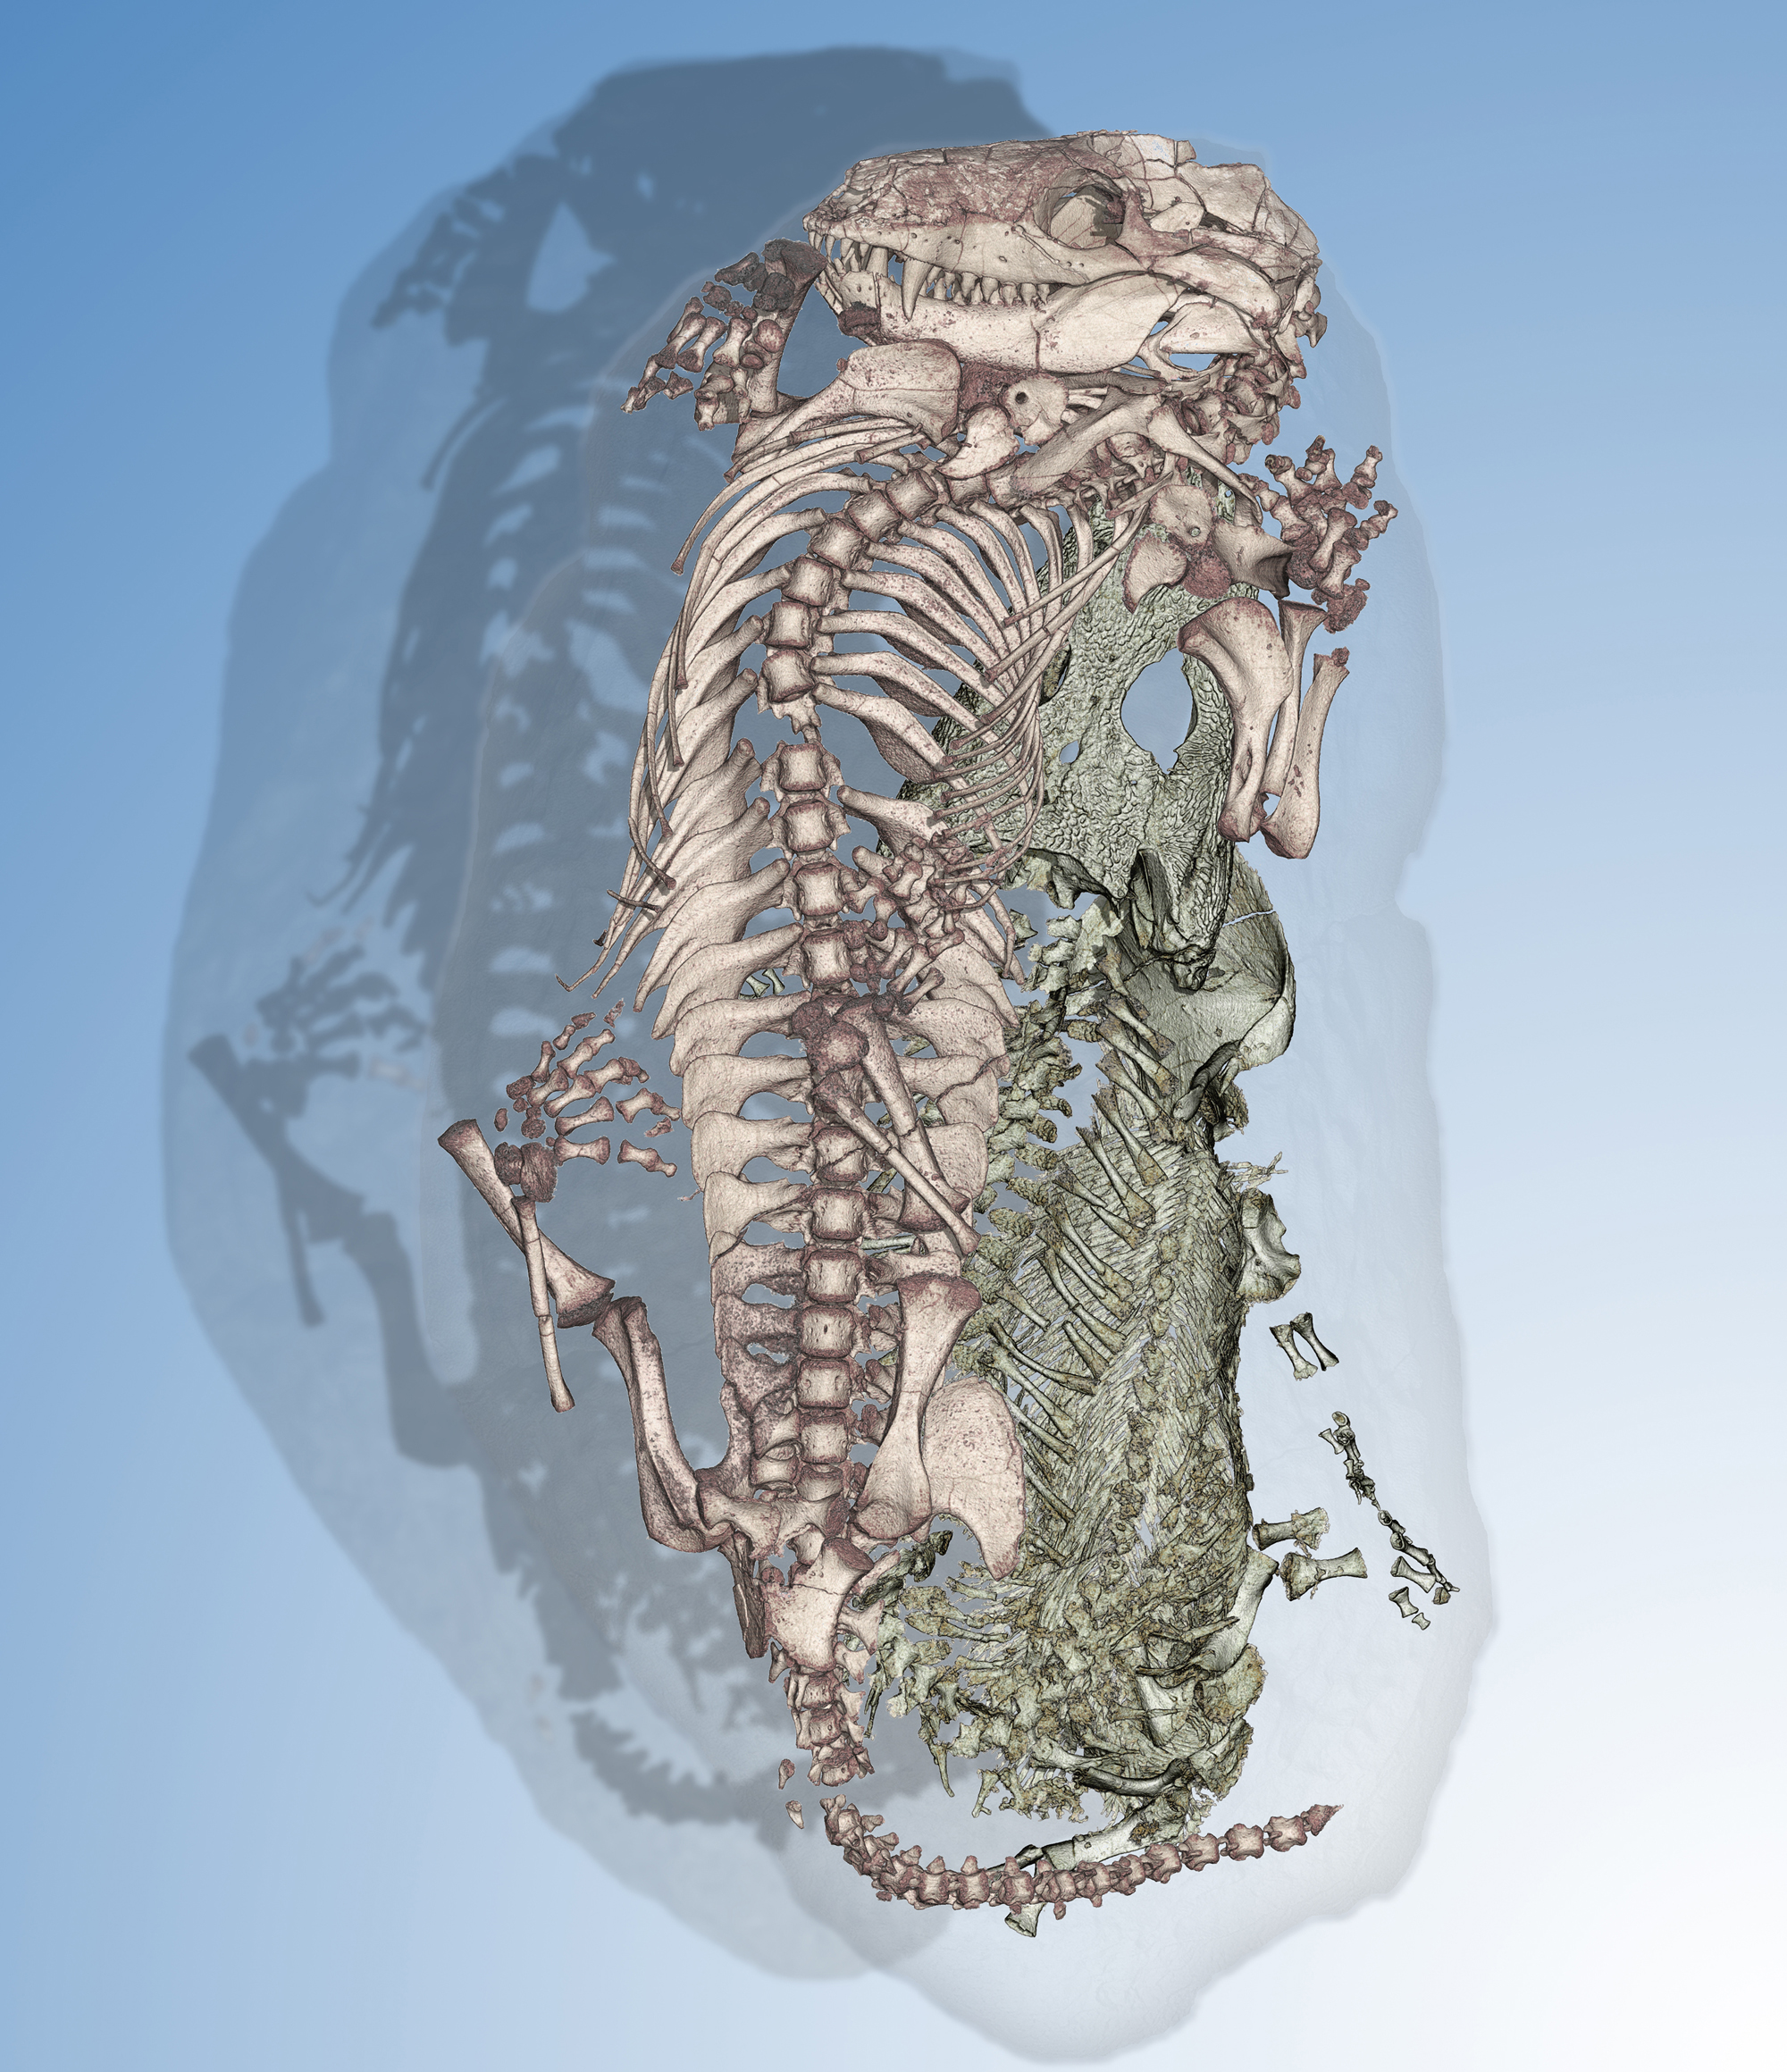 This image shows a mammal like reptile nestled with a primary aquatic amphibian. Credit: ESRF V. Fernandez